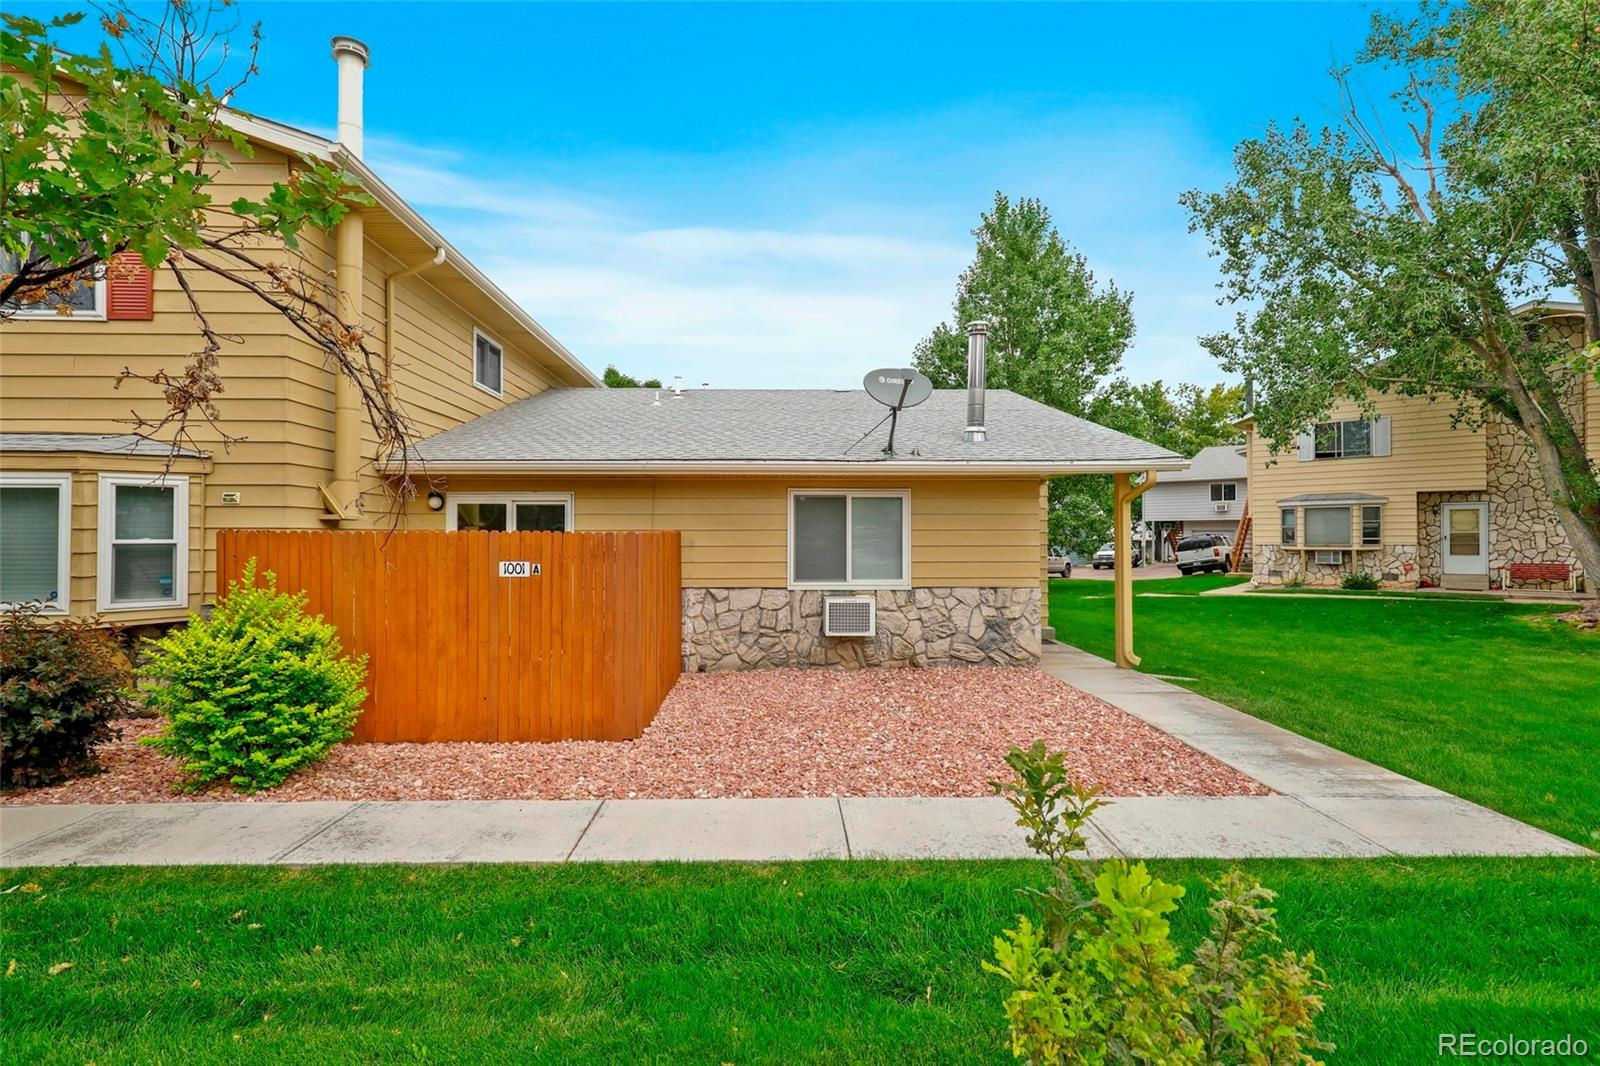 1001 W 112th Avenue #A, Westminster, CO 80234 - #: 3441279